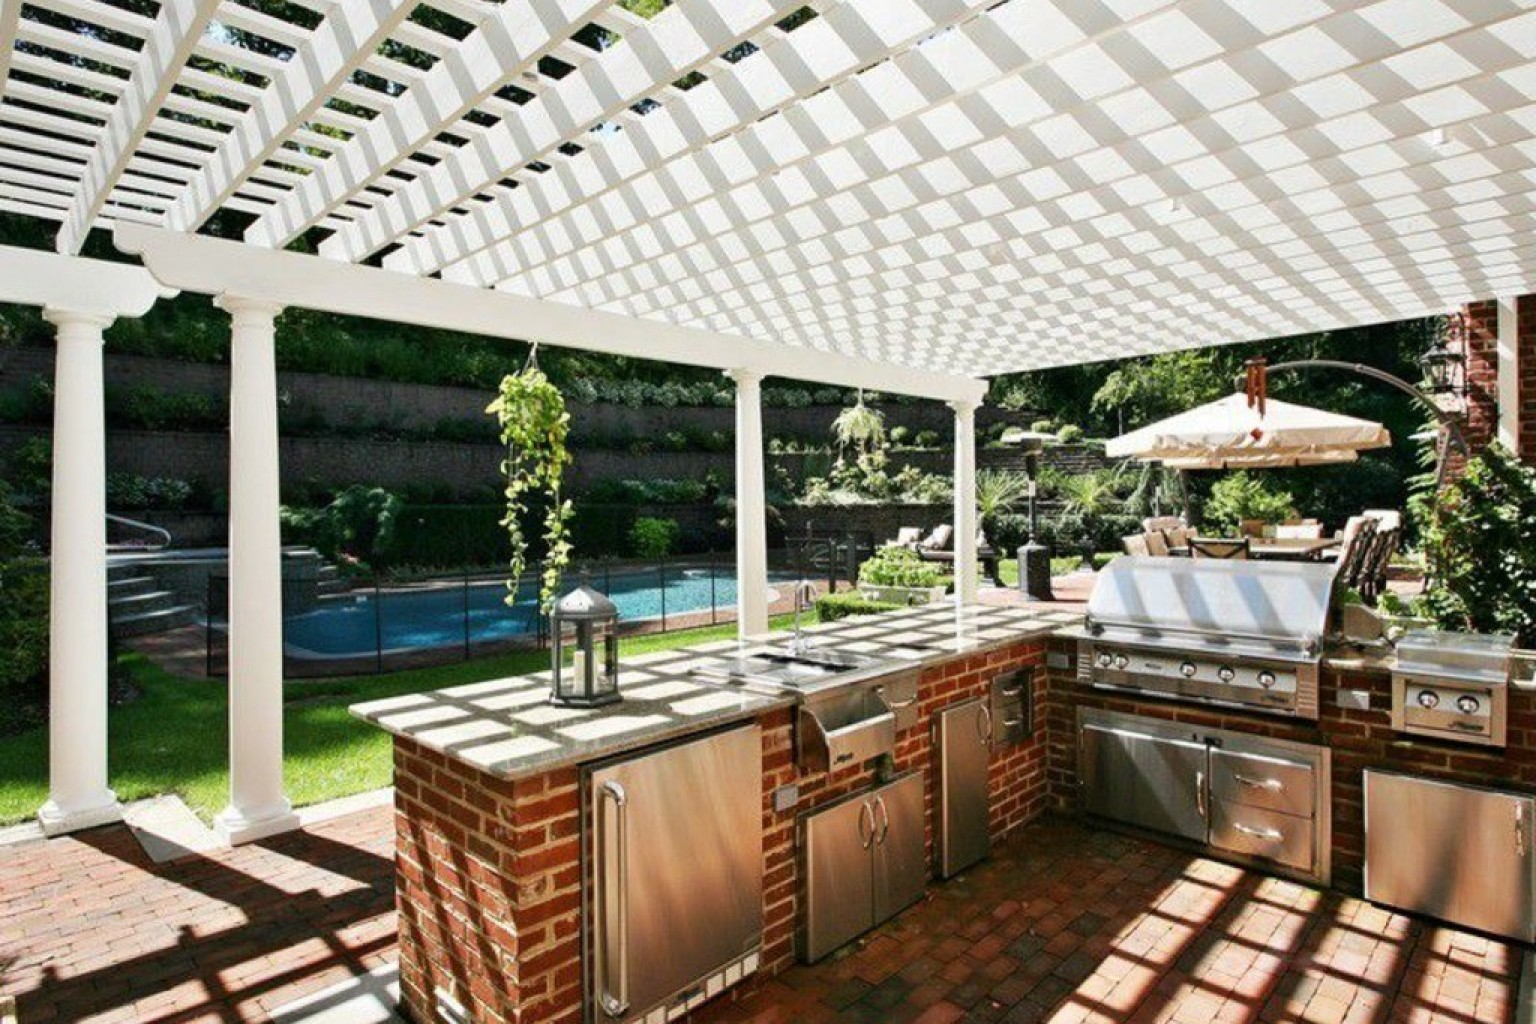 outdoor kitchens cook outside n outdoor kitchen designs 14 Incredible Outdoor Kitchens That Go Way Beyond Grills PHOTOS HuffPost